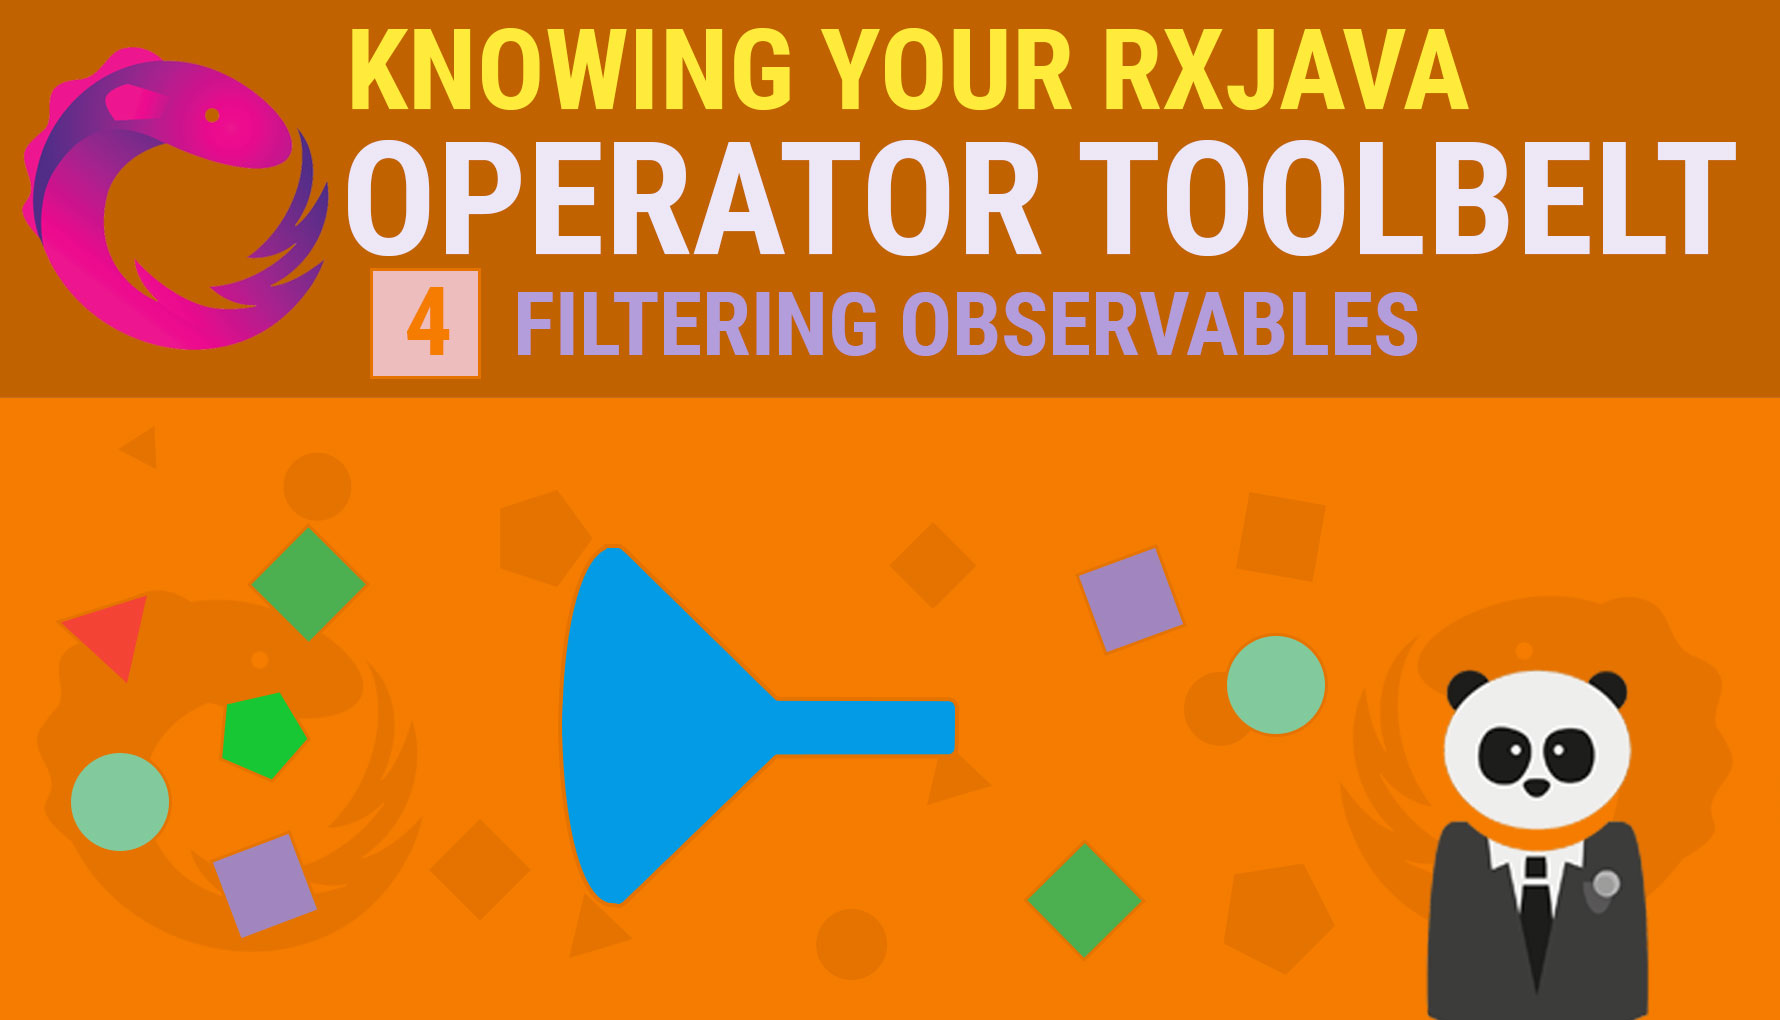 Knowing your RxJava Operator Toolbelt 4: Filtering Observables